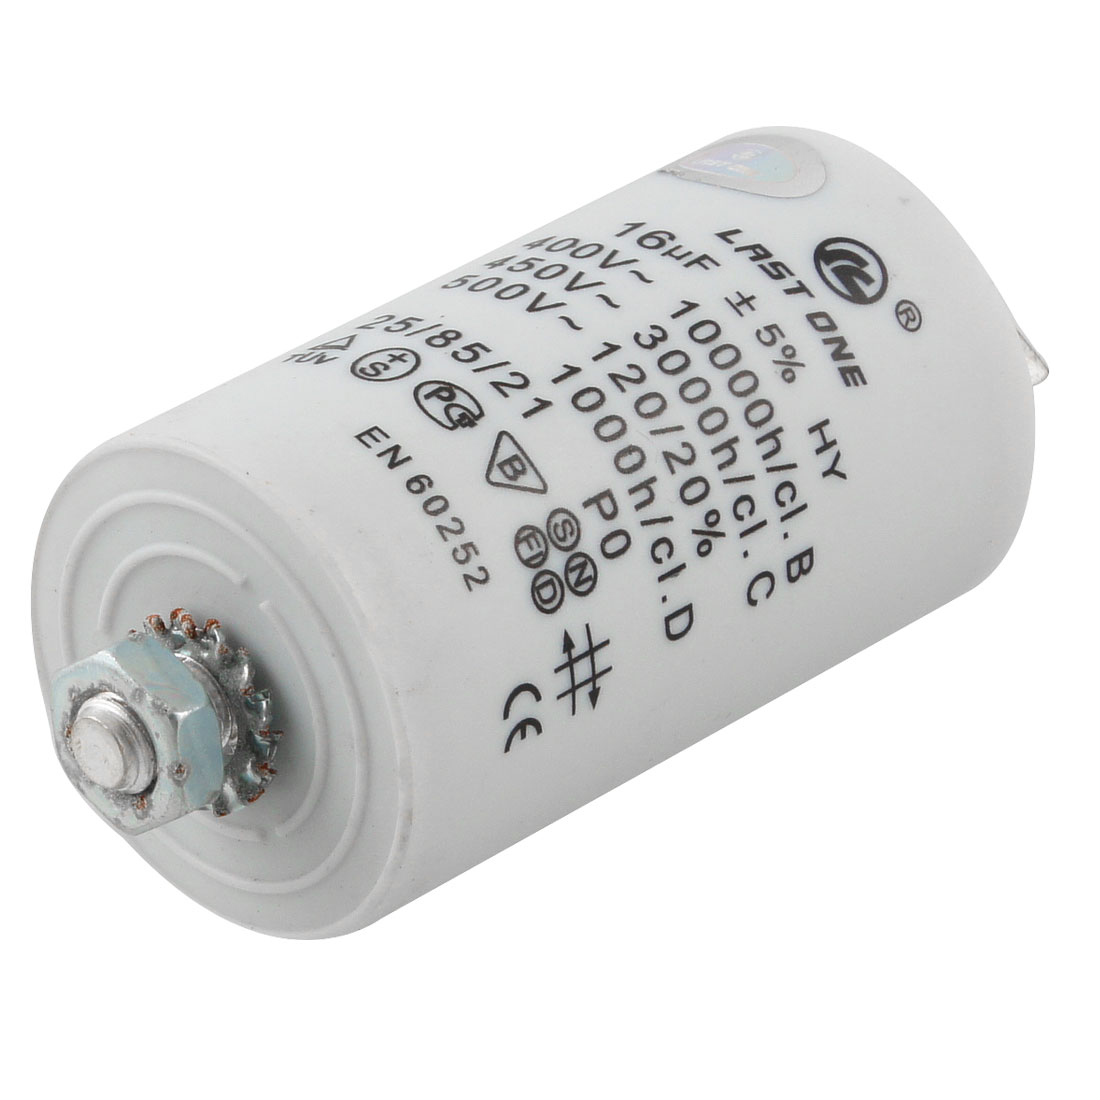 Washing Machine AC 450V 16uF 8mm Thread Non Polar Motor Running Capacitor